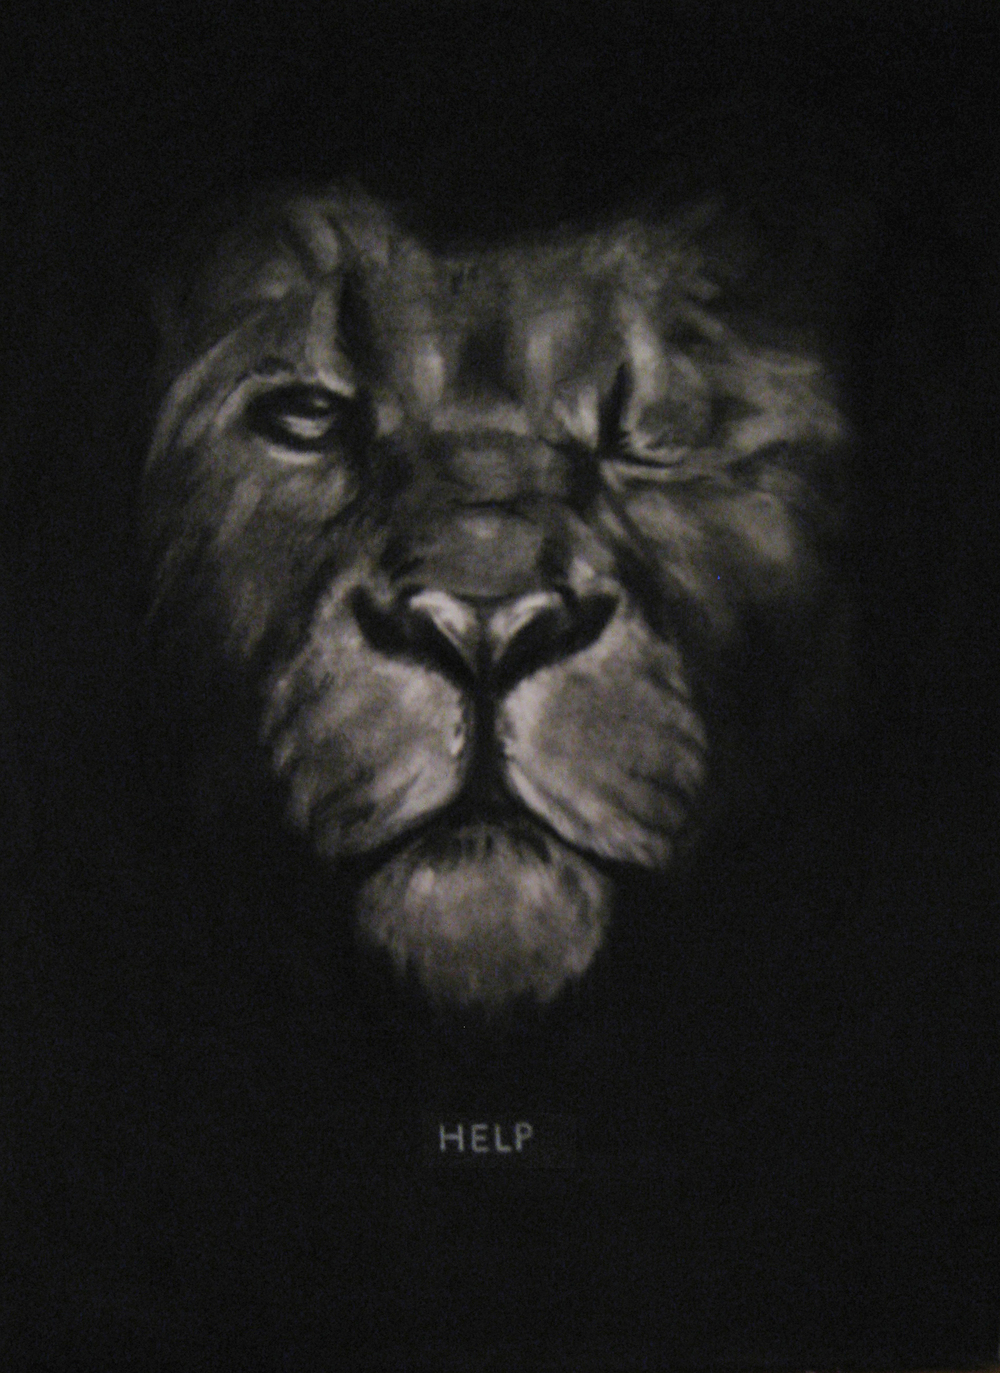 HELP,  2014  Charcoal on stretched paper  18x24""